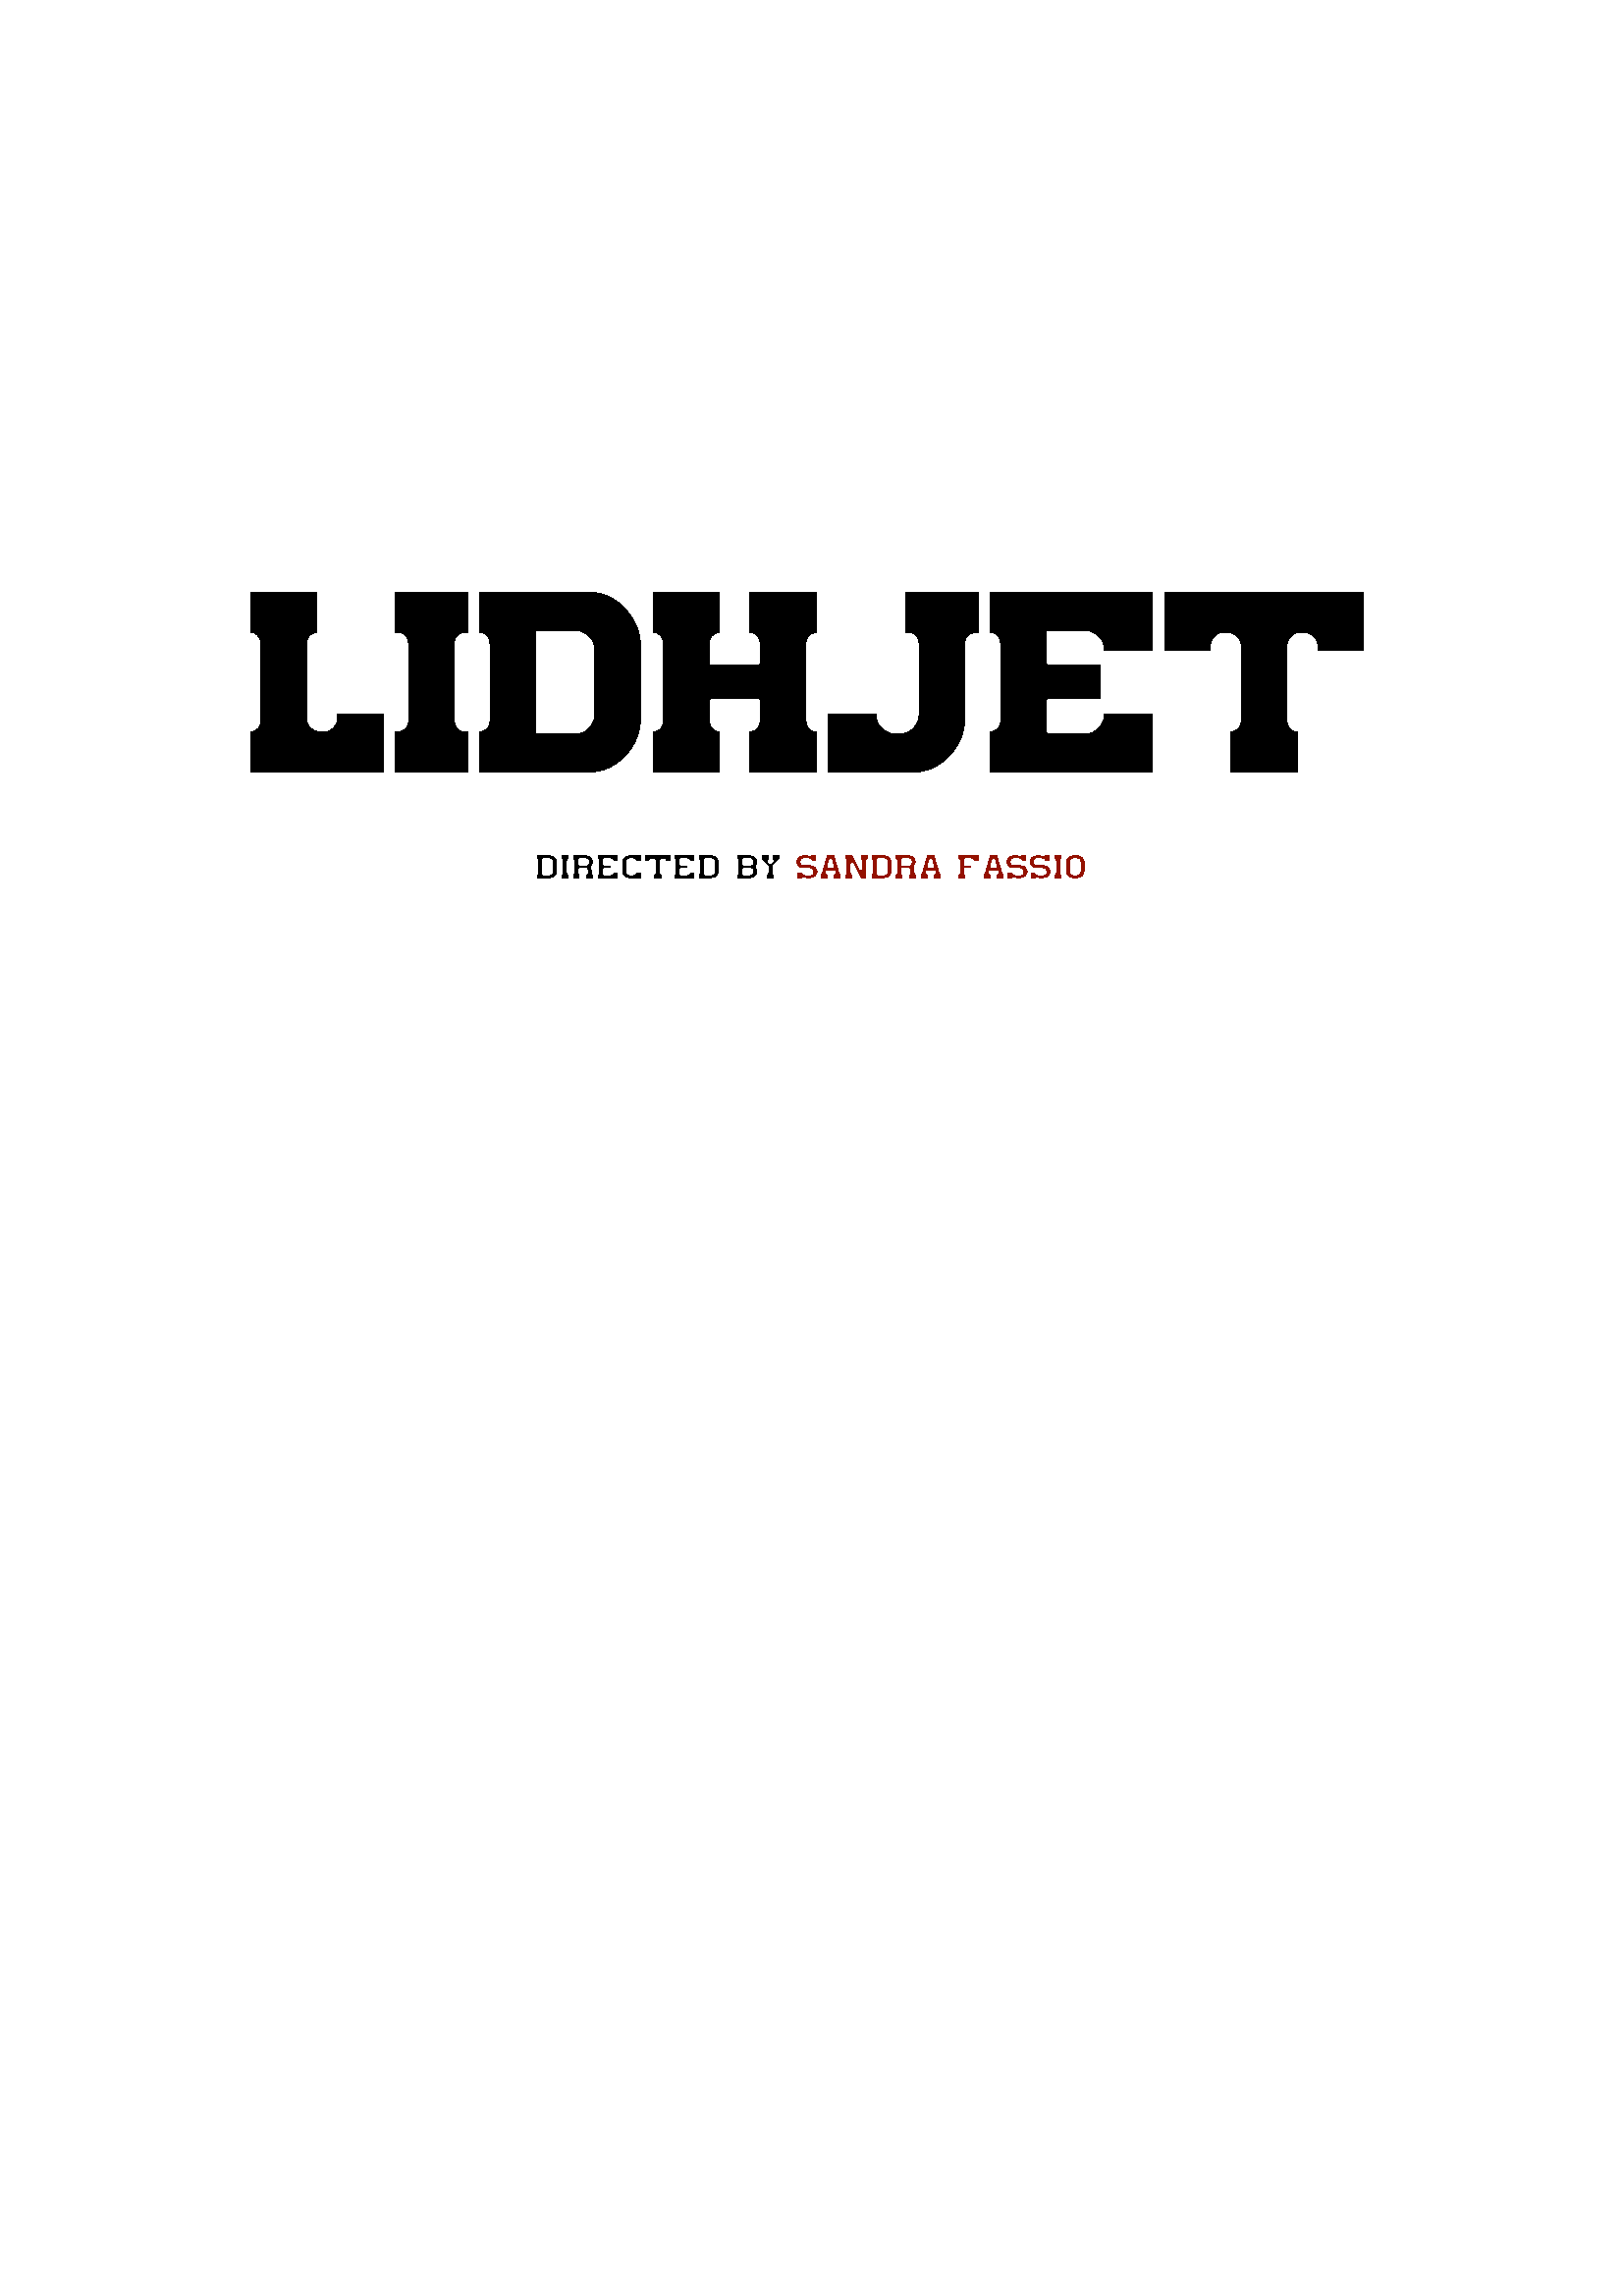 LIDHJET  Feature film written by Sandra Fassio